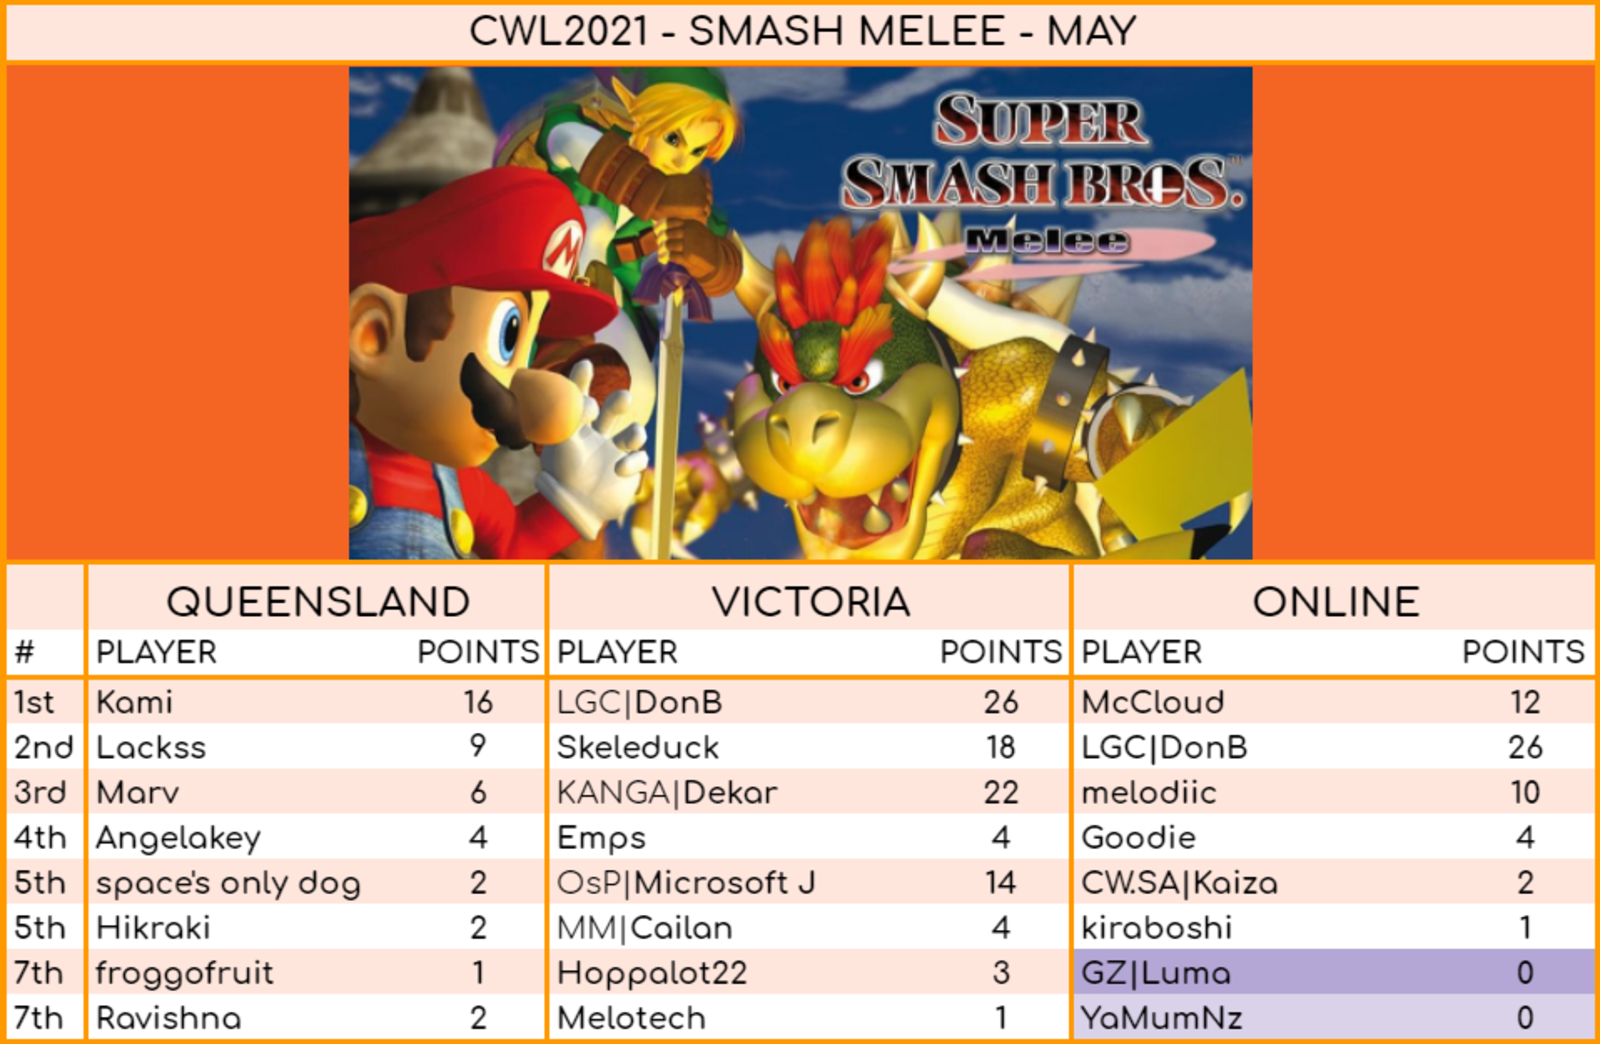 Melee results for May